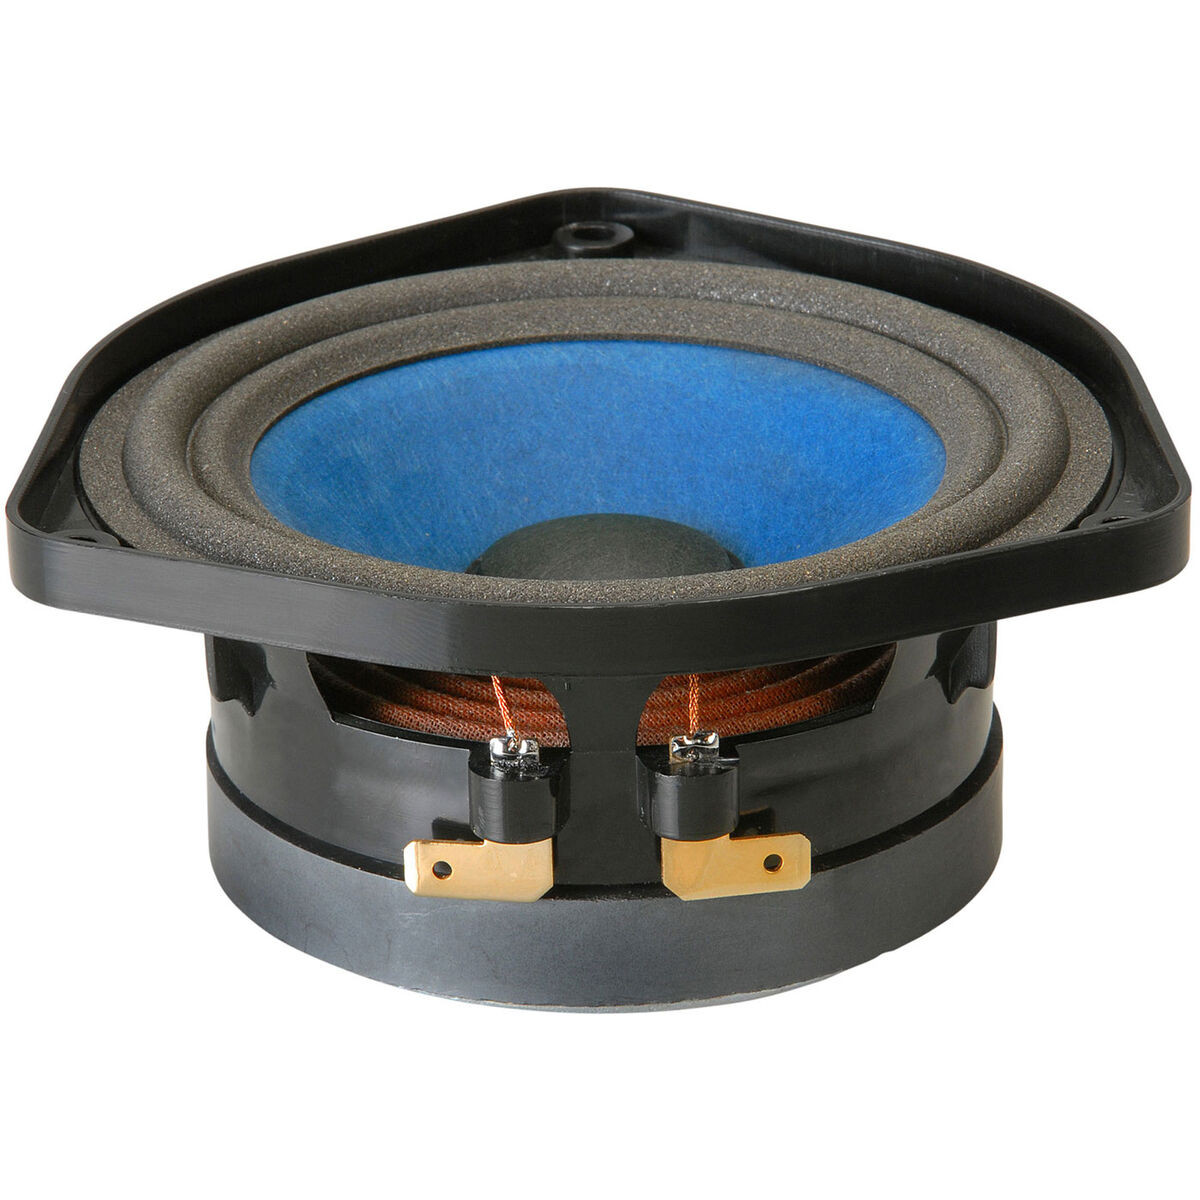 Replacement Speaker Driver for Bose 901 4-1/2